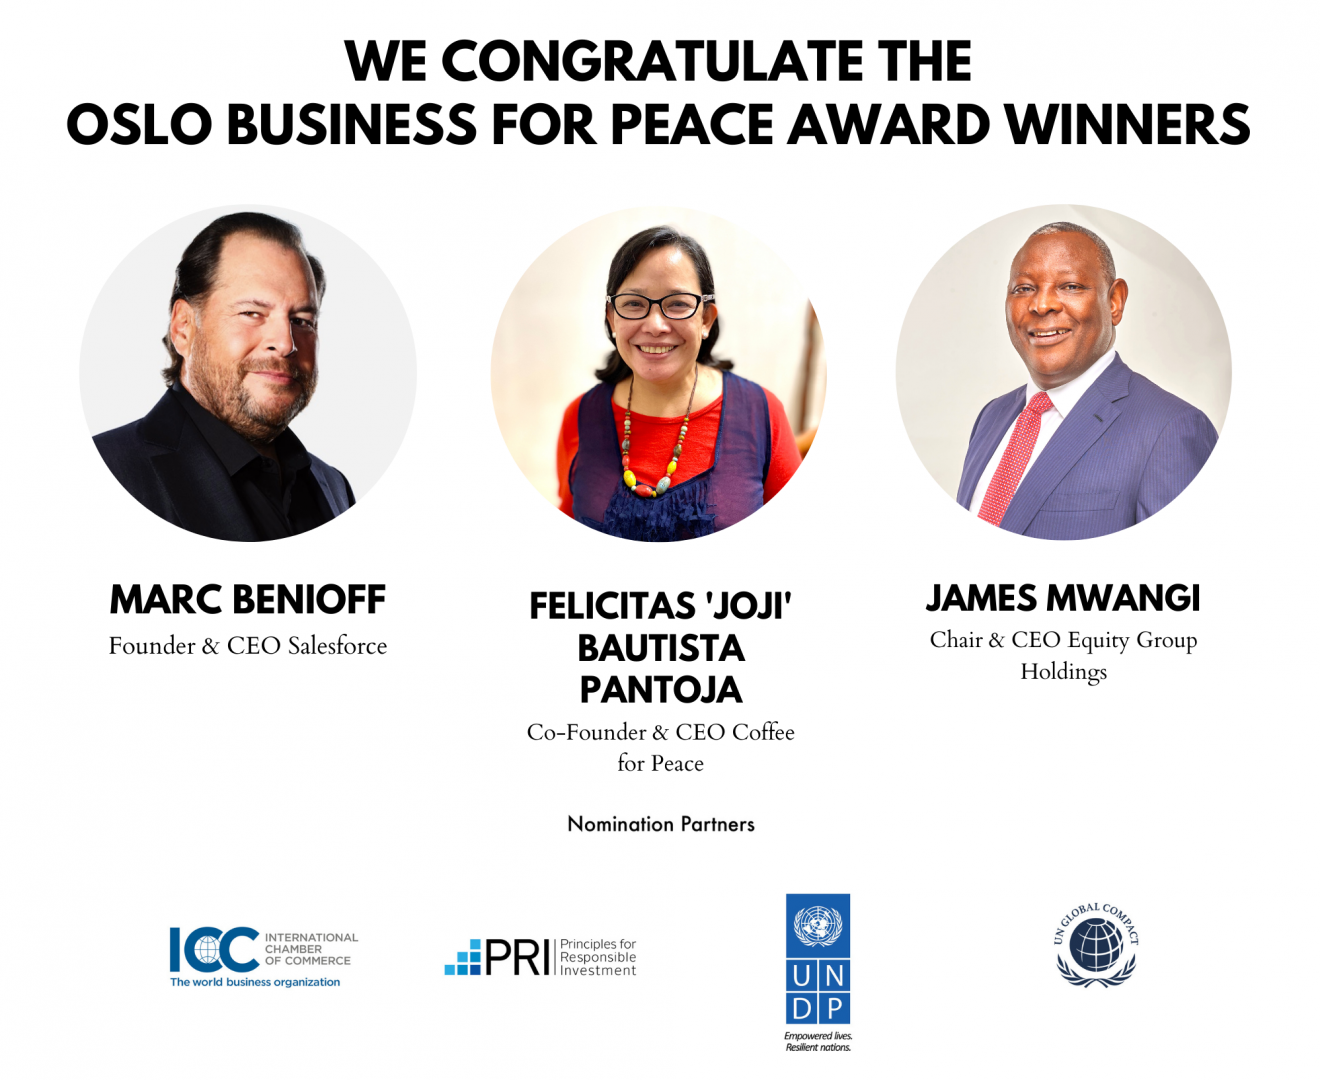 Business-for-Peace-Awards-Winners-Partners